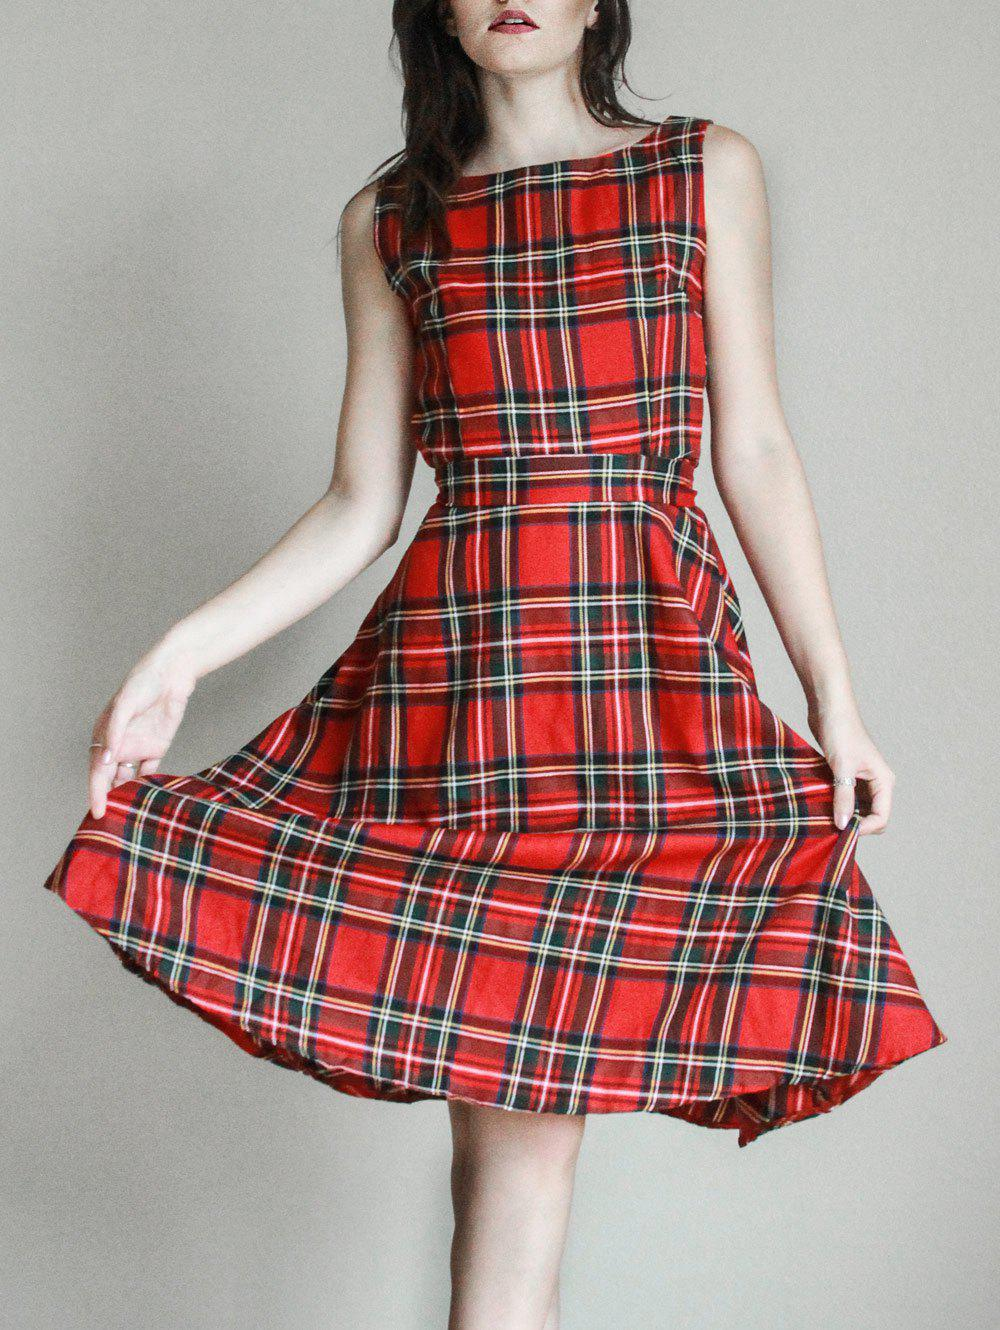 Vintage Jewel Neck Sleeveless Plaid Belted Women A-line DressWOMEN<br><br>Size: M; Color: RED; Style: Casual; Material: Cotton Blend,Polyester; Silhouette: A-Line; Dresses Length: Mid-Calf; Neckline: Jewel Neck; Sleeve Length: Sleeveless; Pattern Type: Plaid; With Belt: Yes; Season: Summer; Weight: 0.325kg; Package Contents: 1 x Dress  1 x Belt;